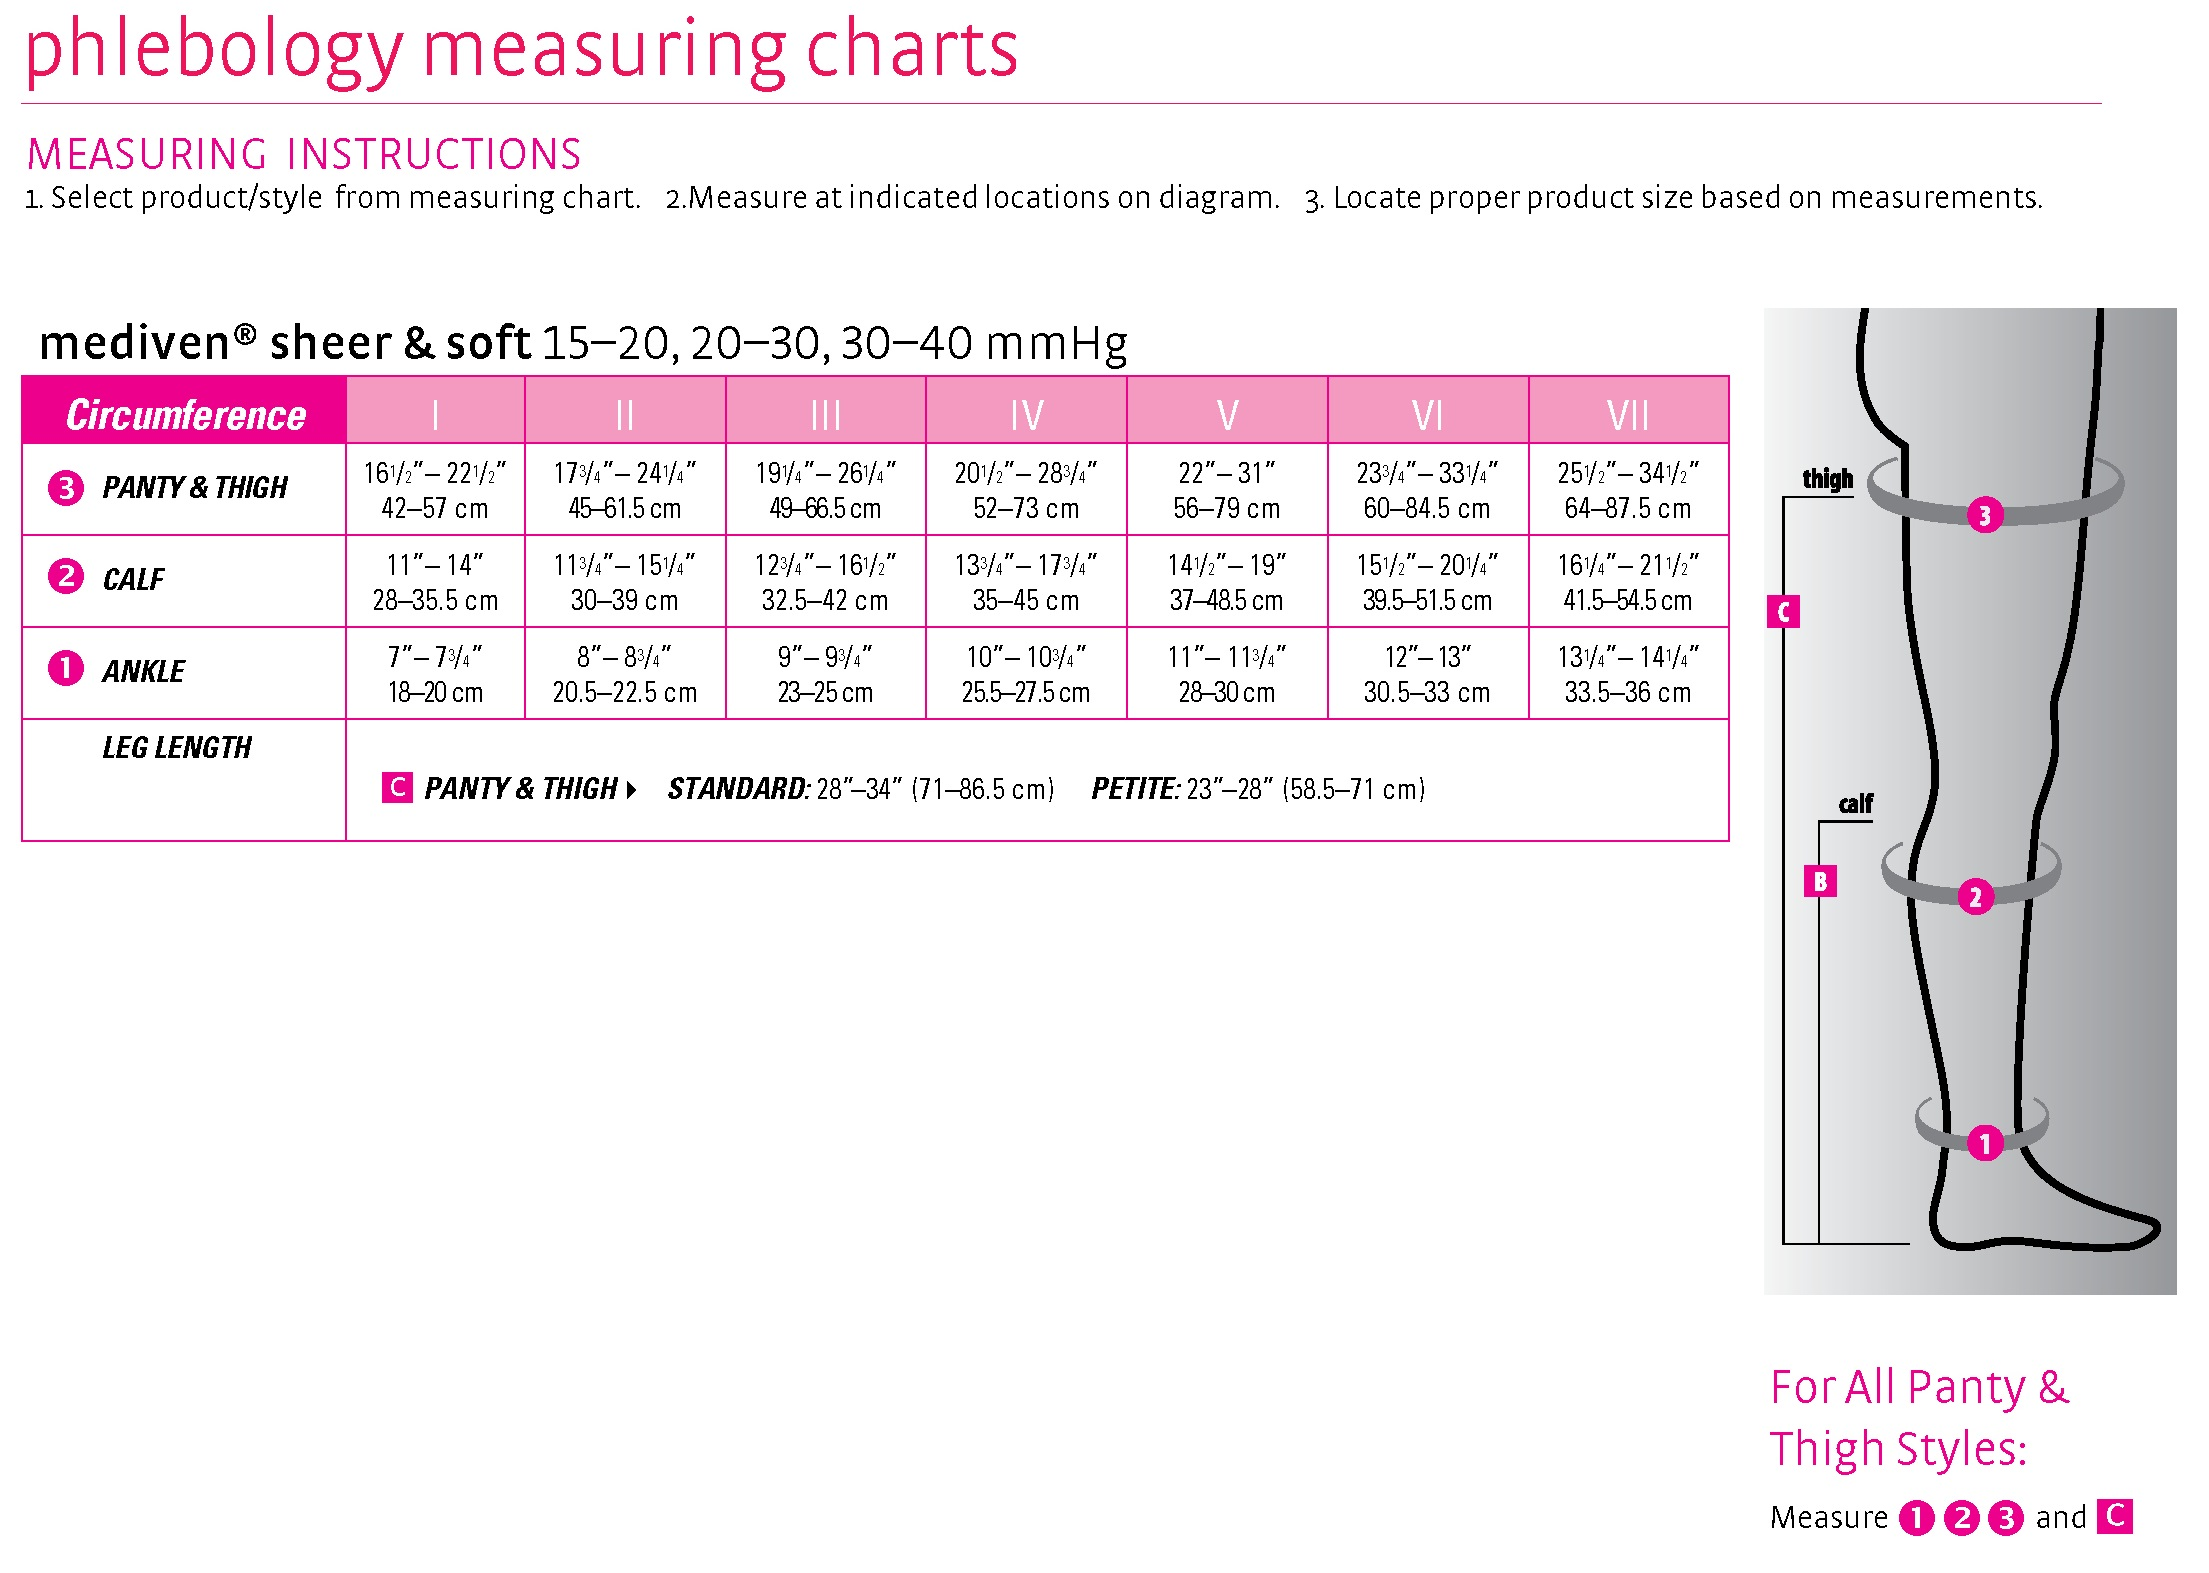 40f728888c For All Panty & Thigh Styles: Measure 1, 2, 3 and C